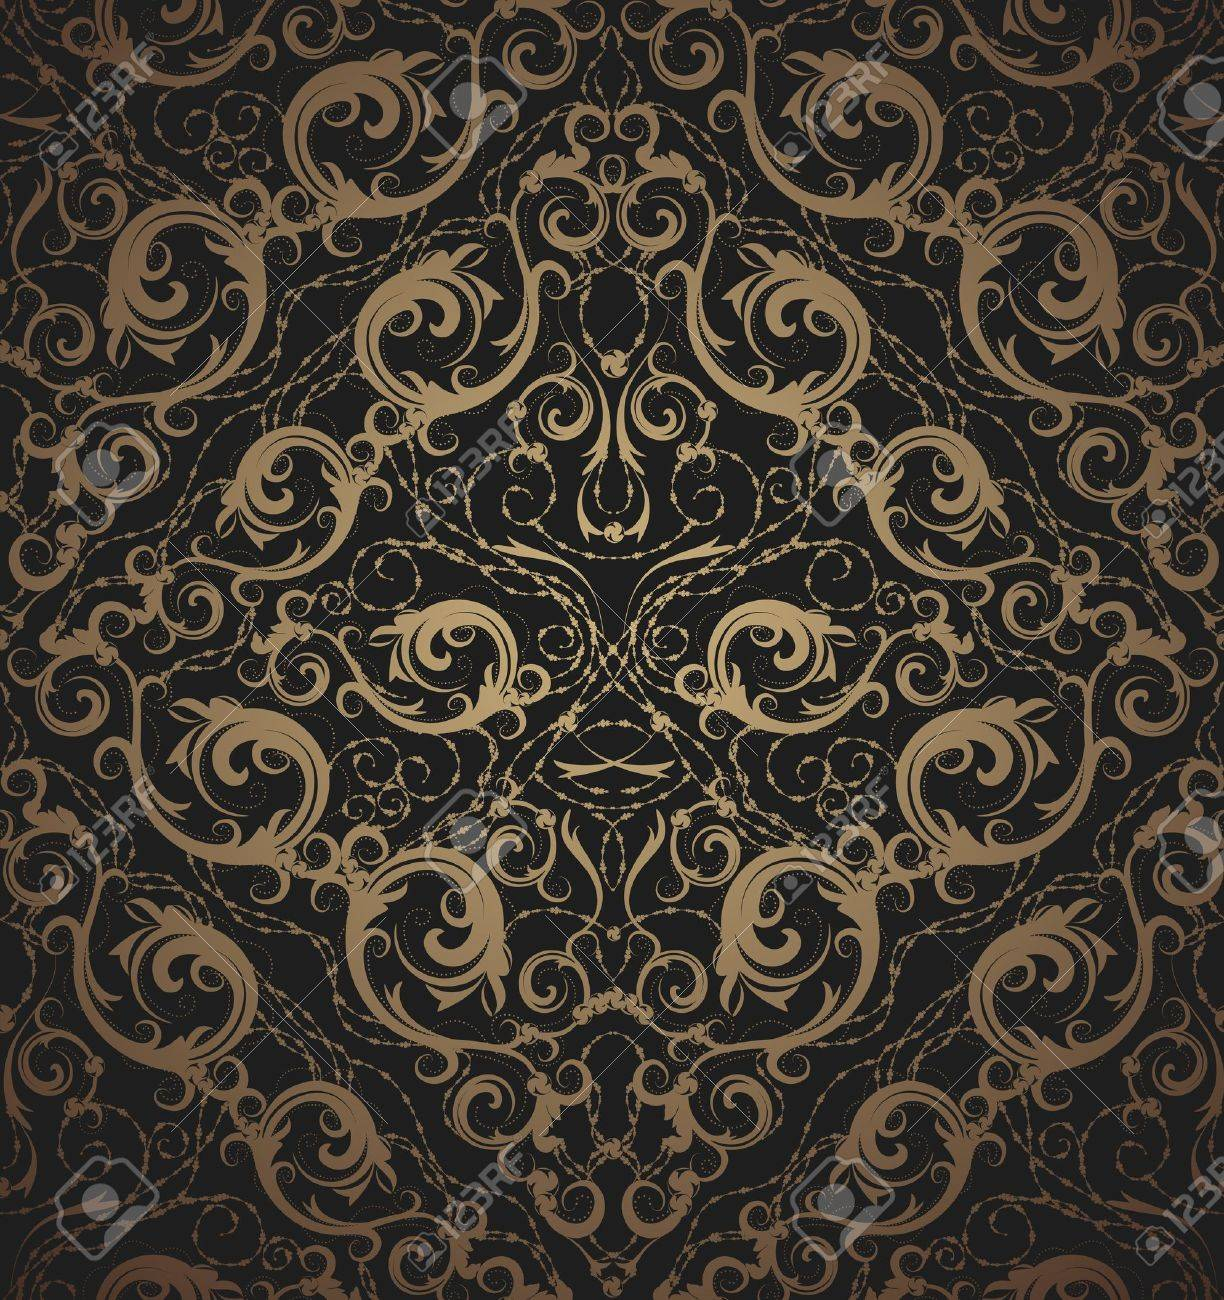 Floral vector black and gold seamless royal beauty ornament - 9523979